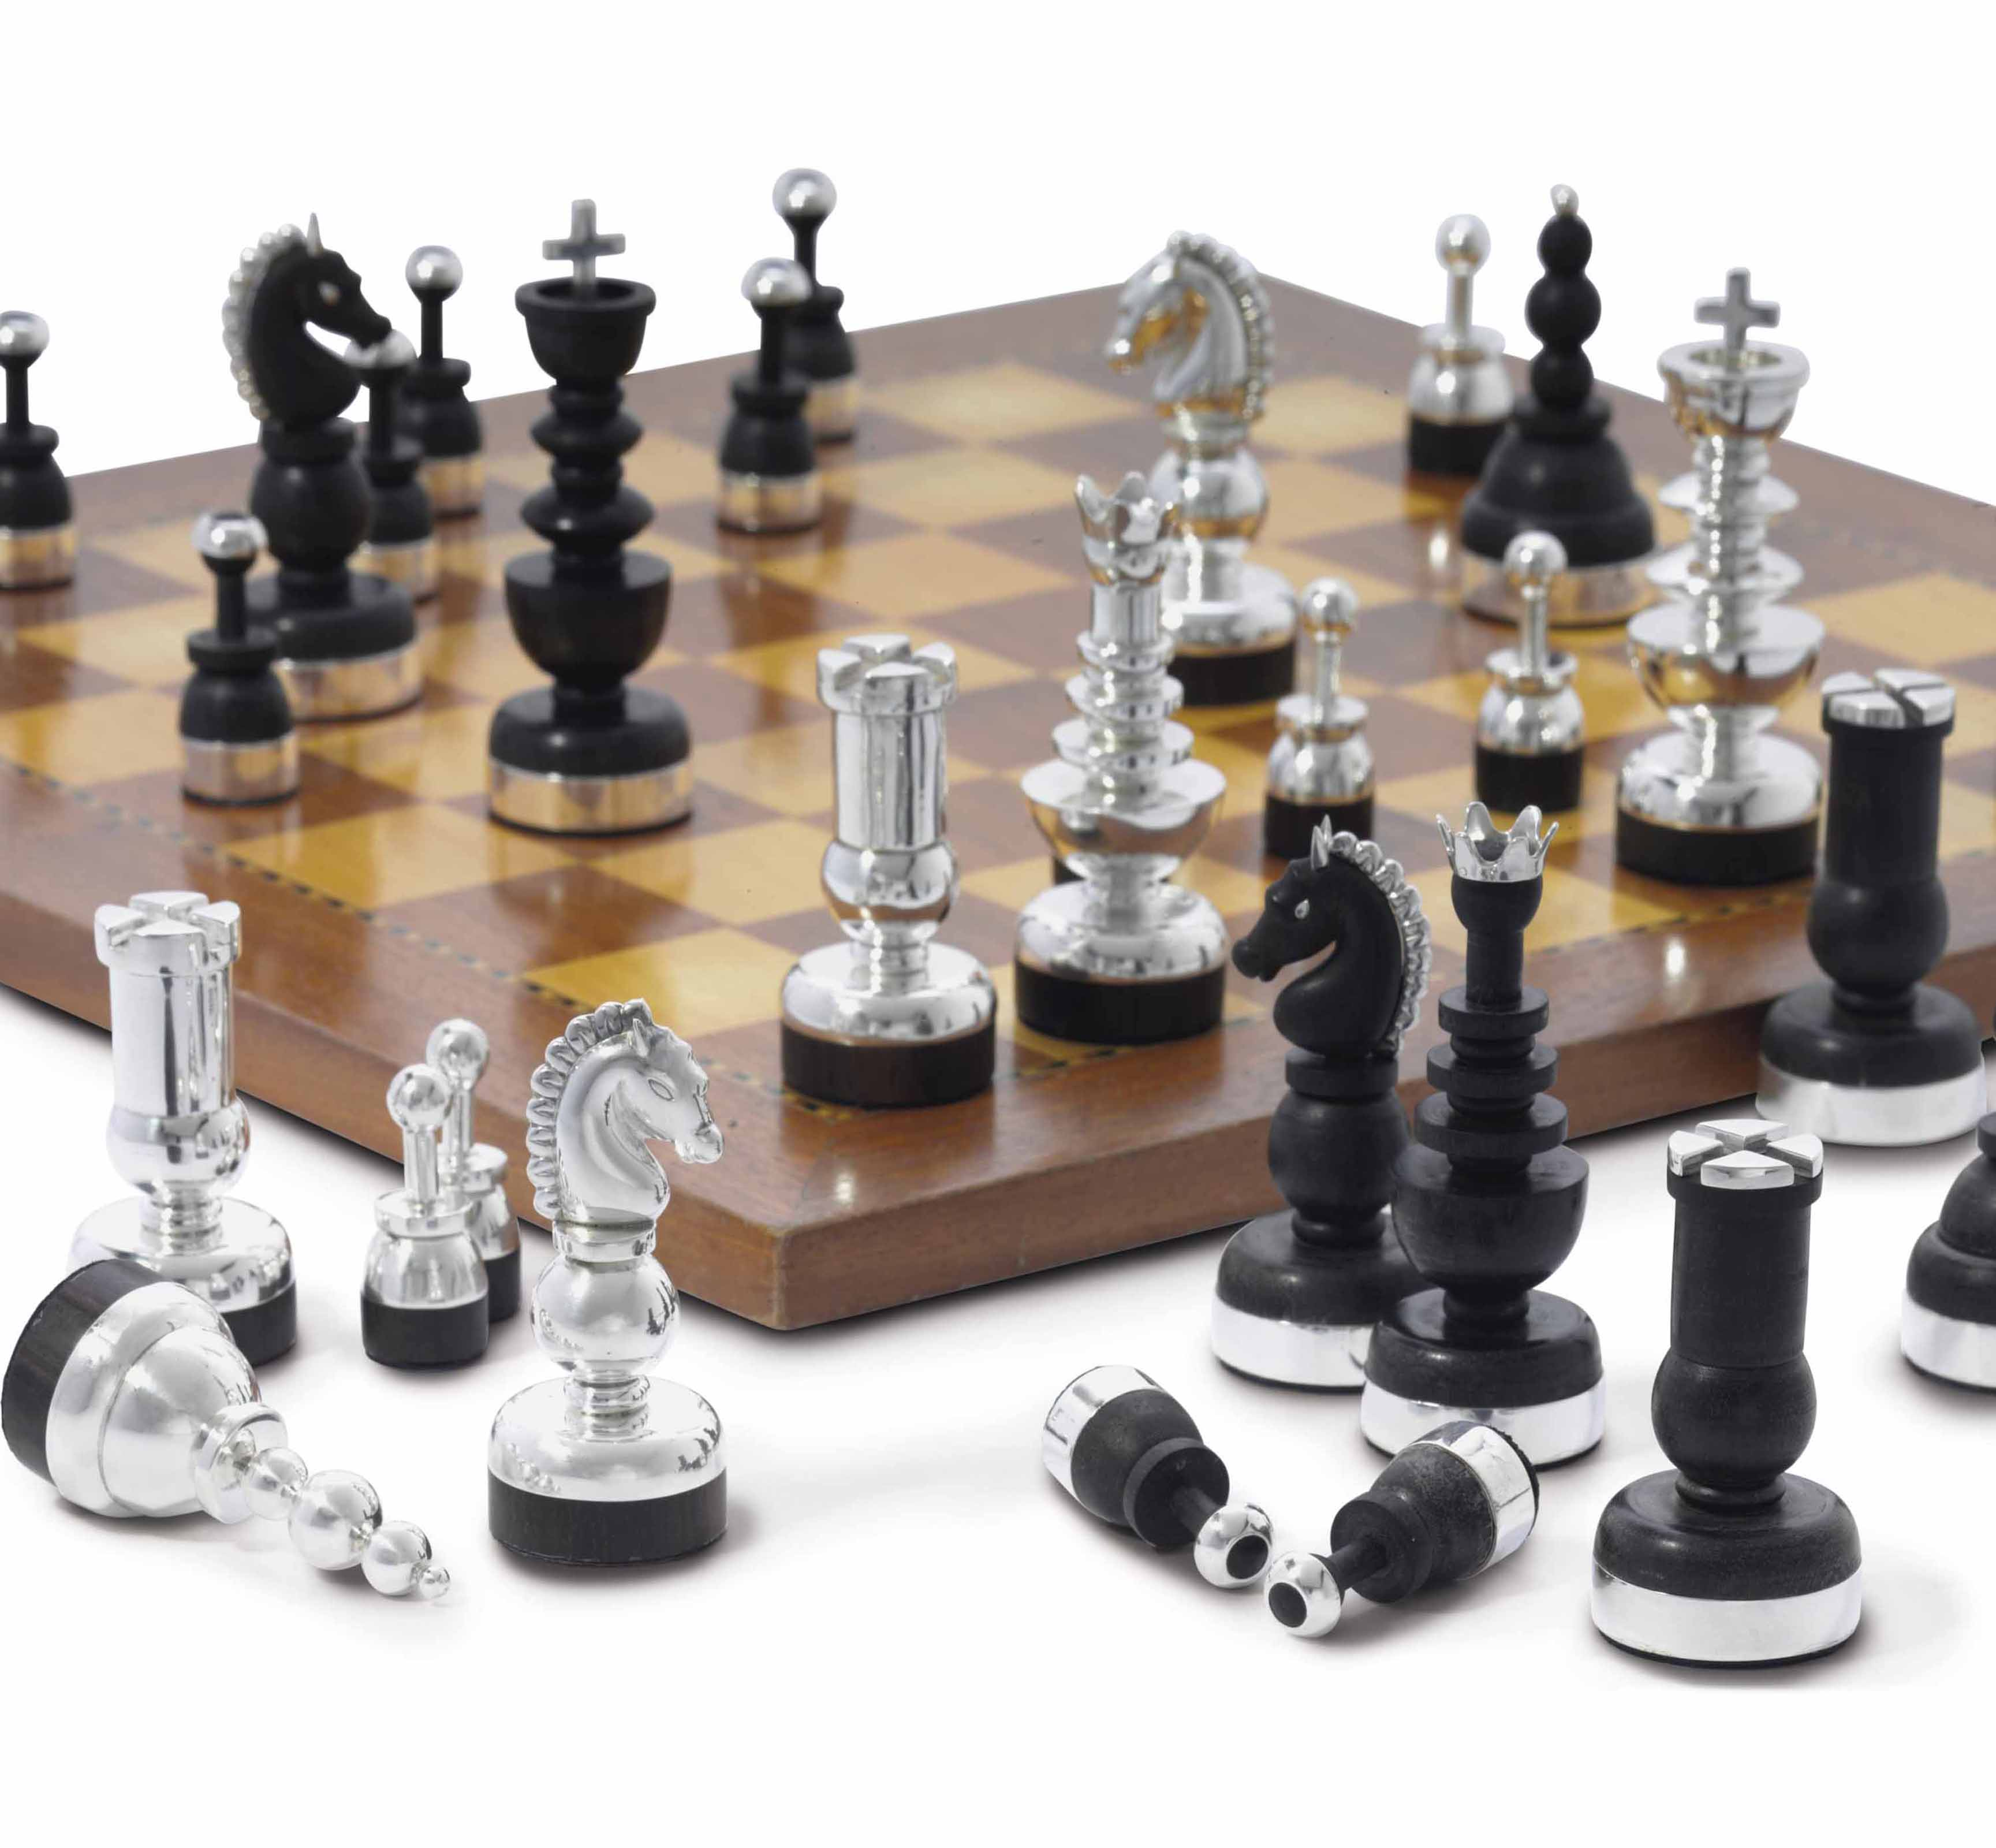 A MEXICAN SILVER-MOUNTED EBONY CHESS SET, DESIGNED BY HECTOR AGUILAR